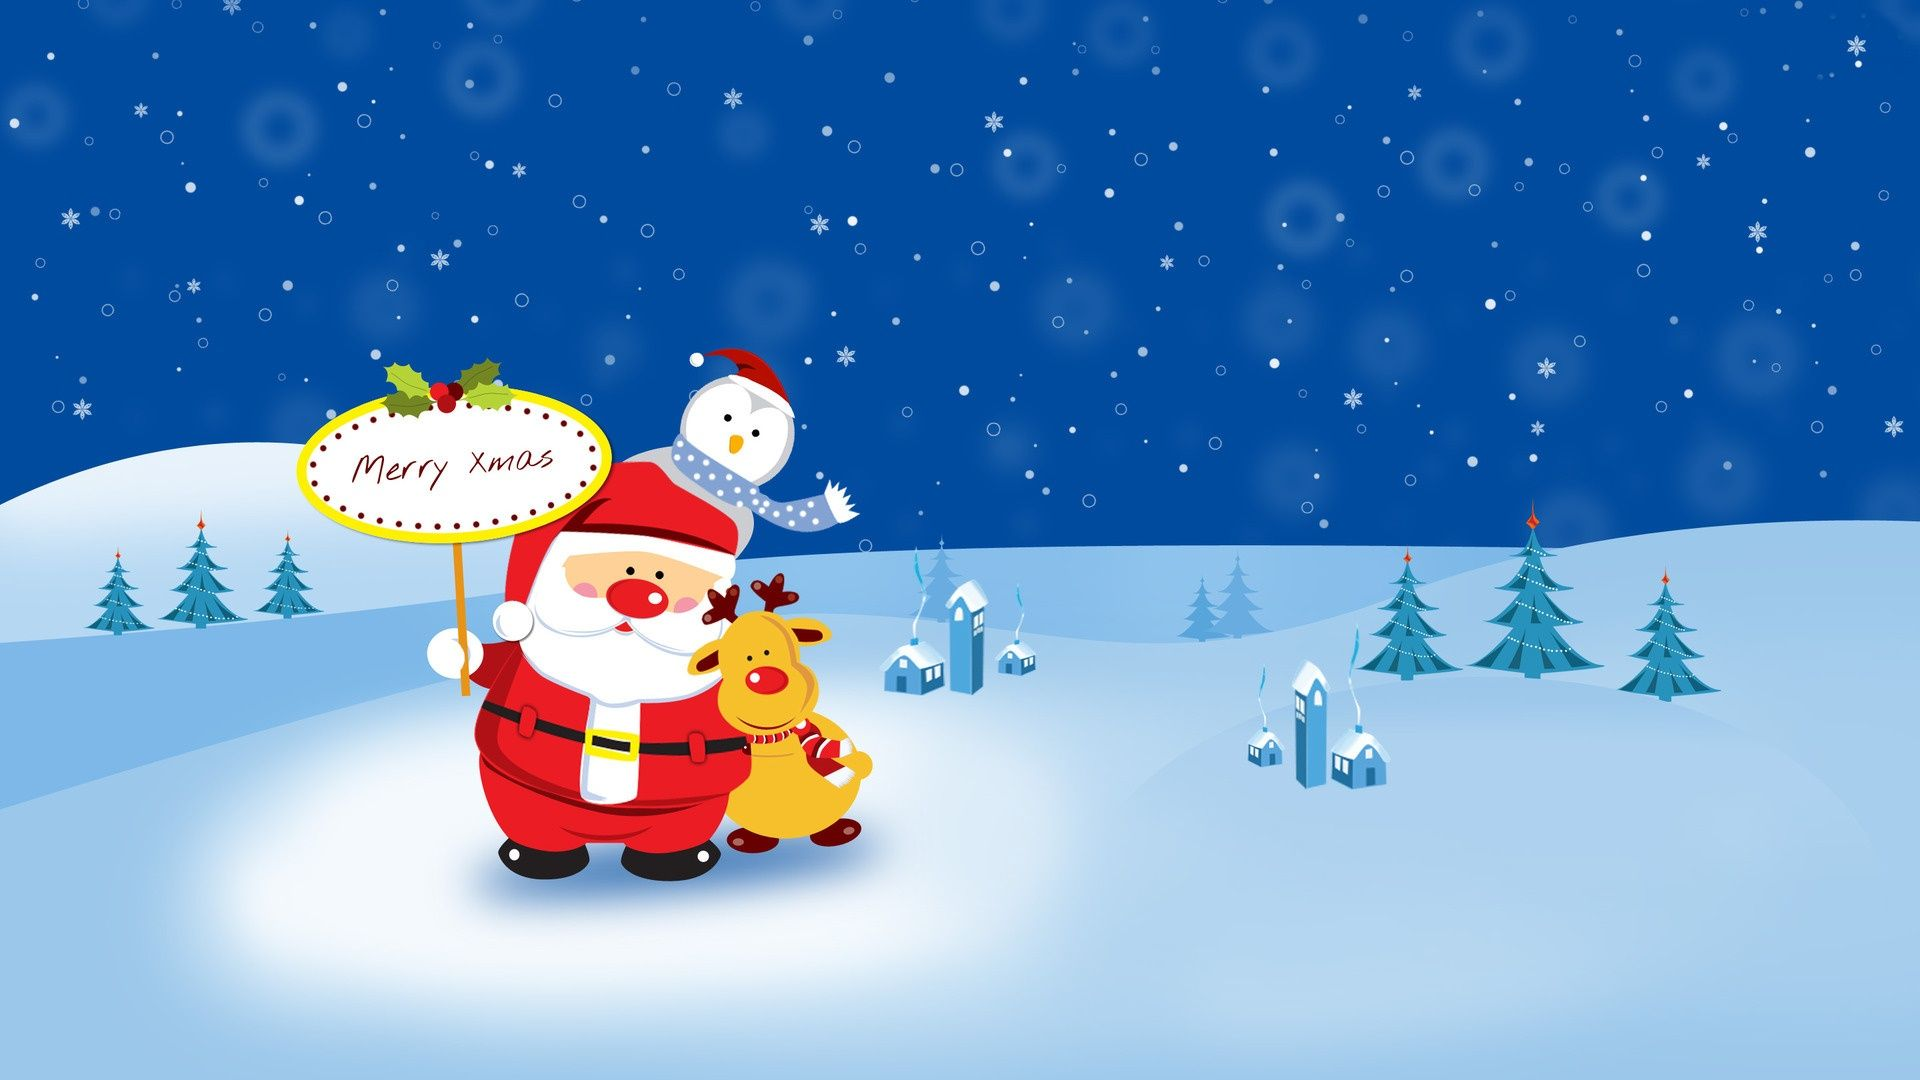 christmas cloze cute christmas backgrounds cute christmas wallpaper wallpaper iphone christmas cute christmas wallpaper